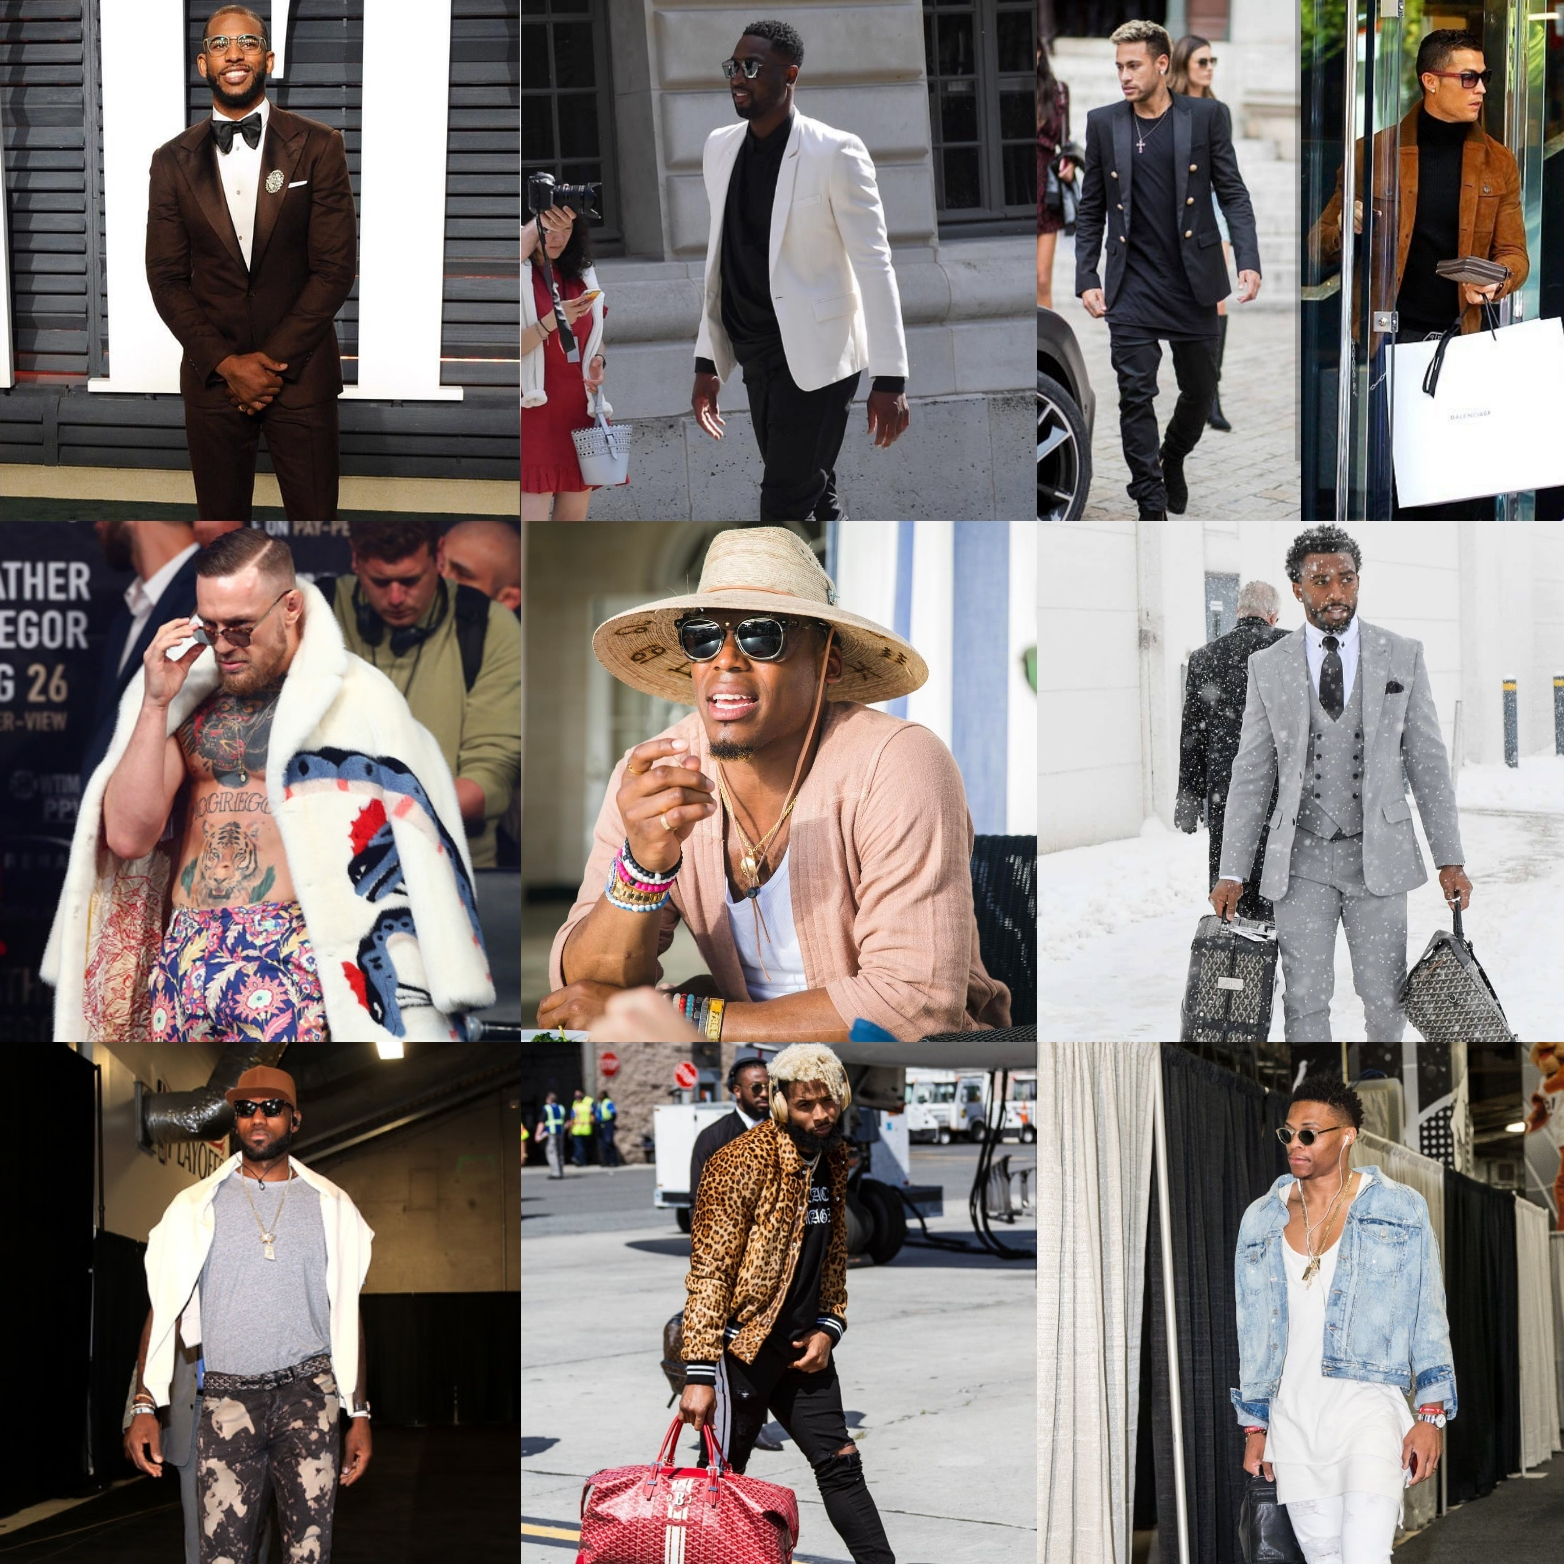 Best Of 2017: 10 Most Stylish Athletes Of The Year